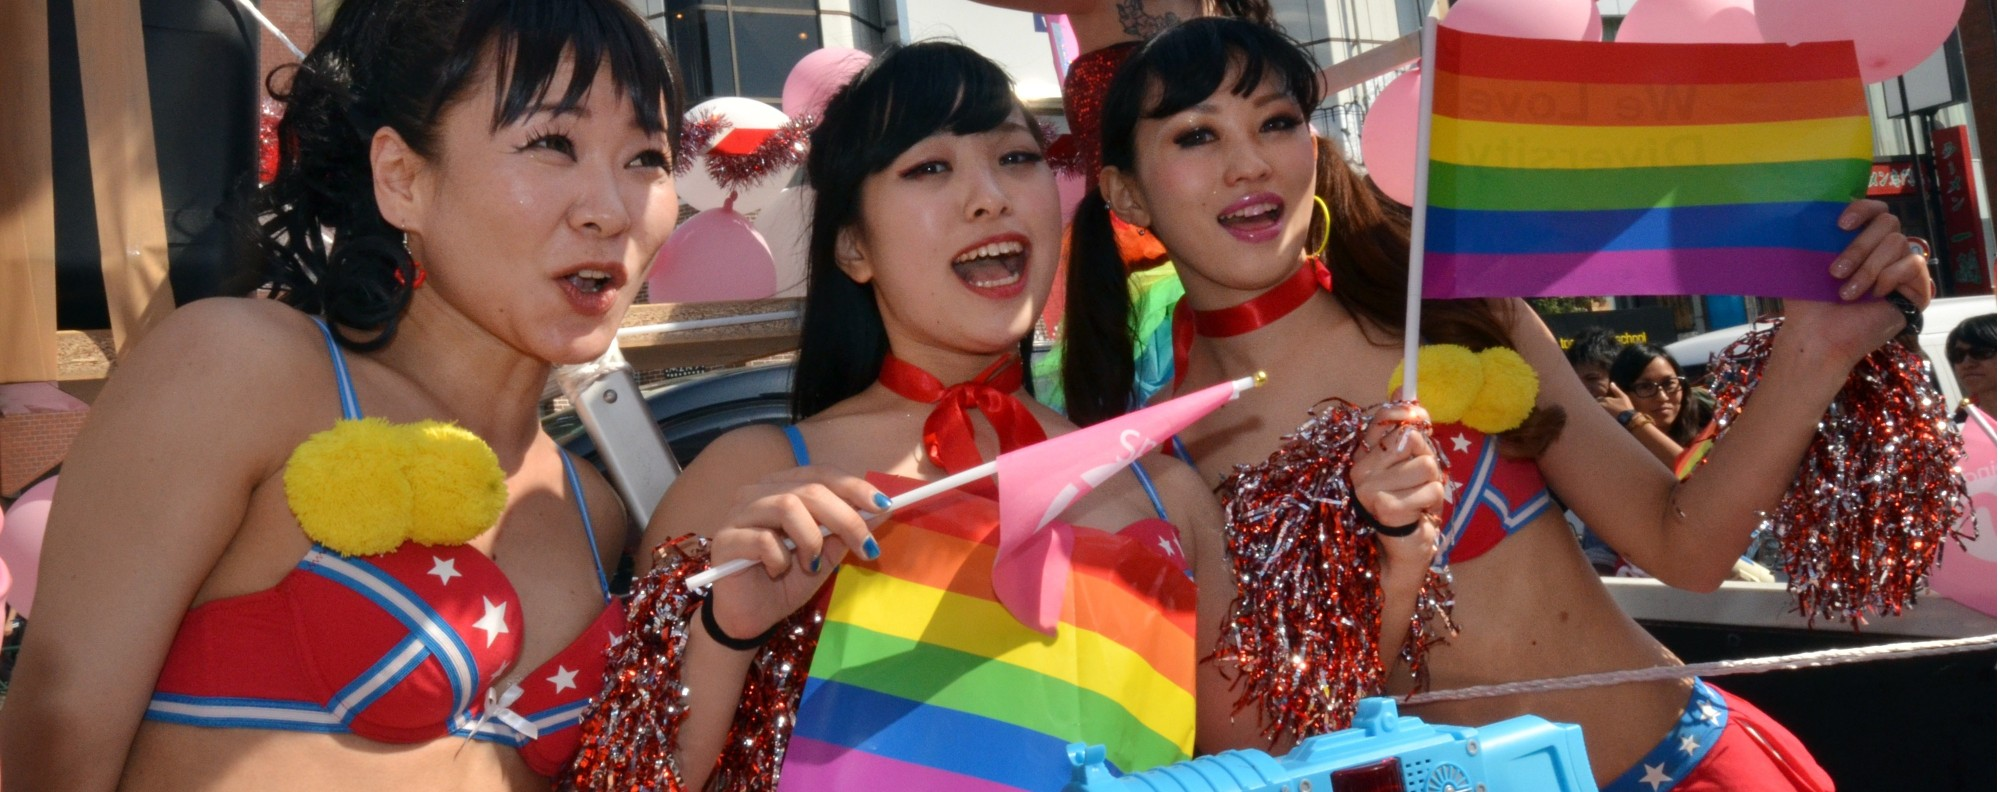 Japan stance on homosexuality